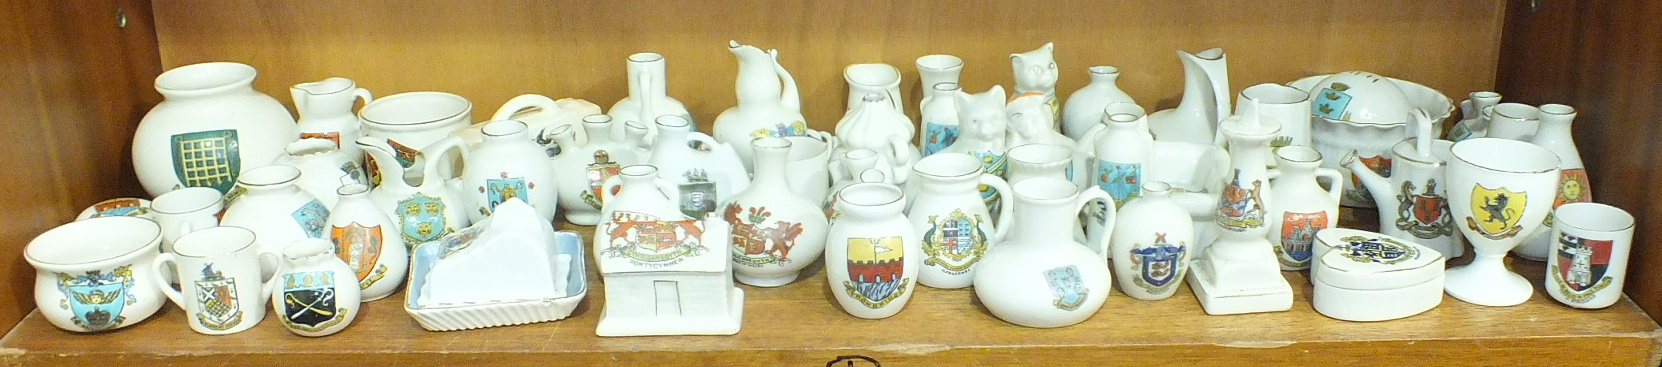 Lot 159 - A collection of WH Goss and other crested ware, approximately fifty pieces.